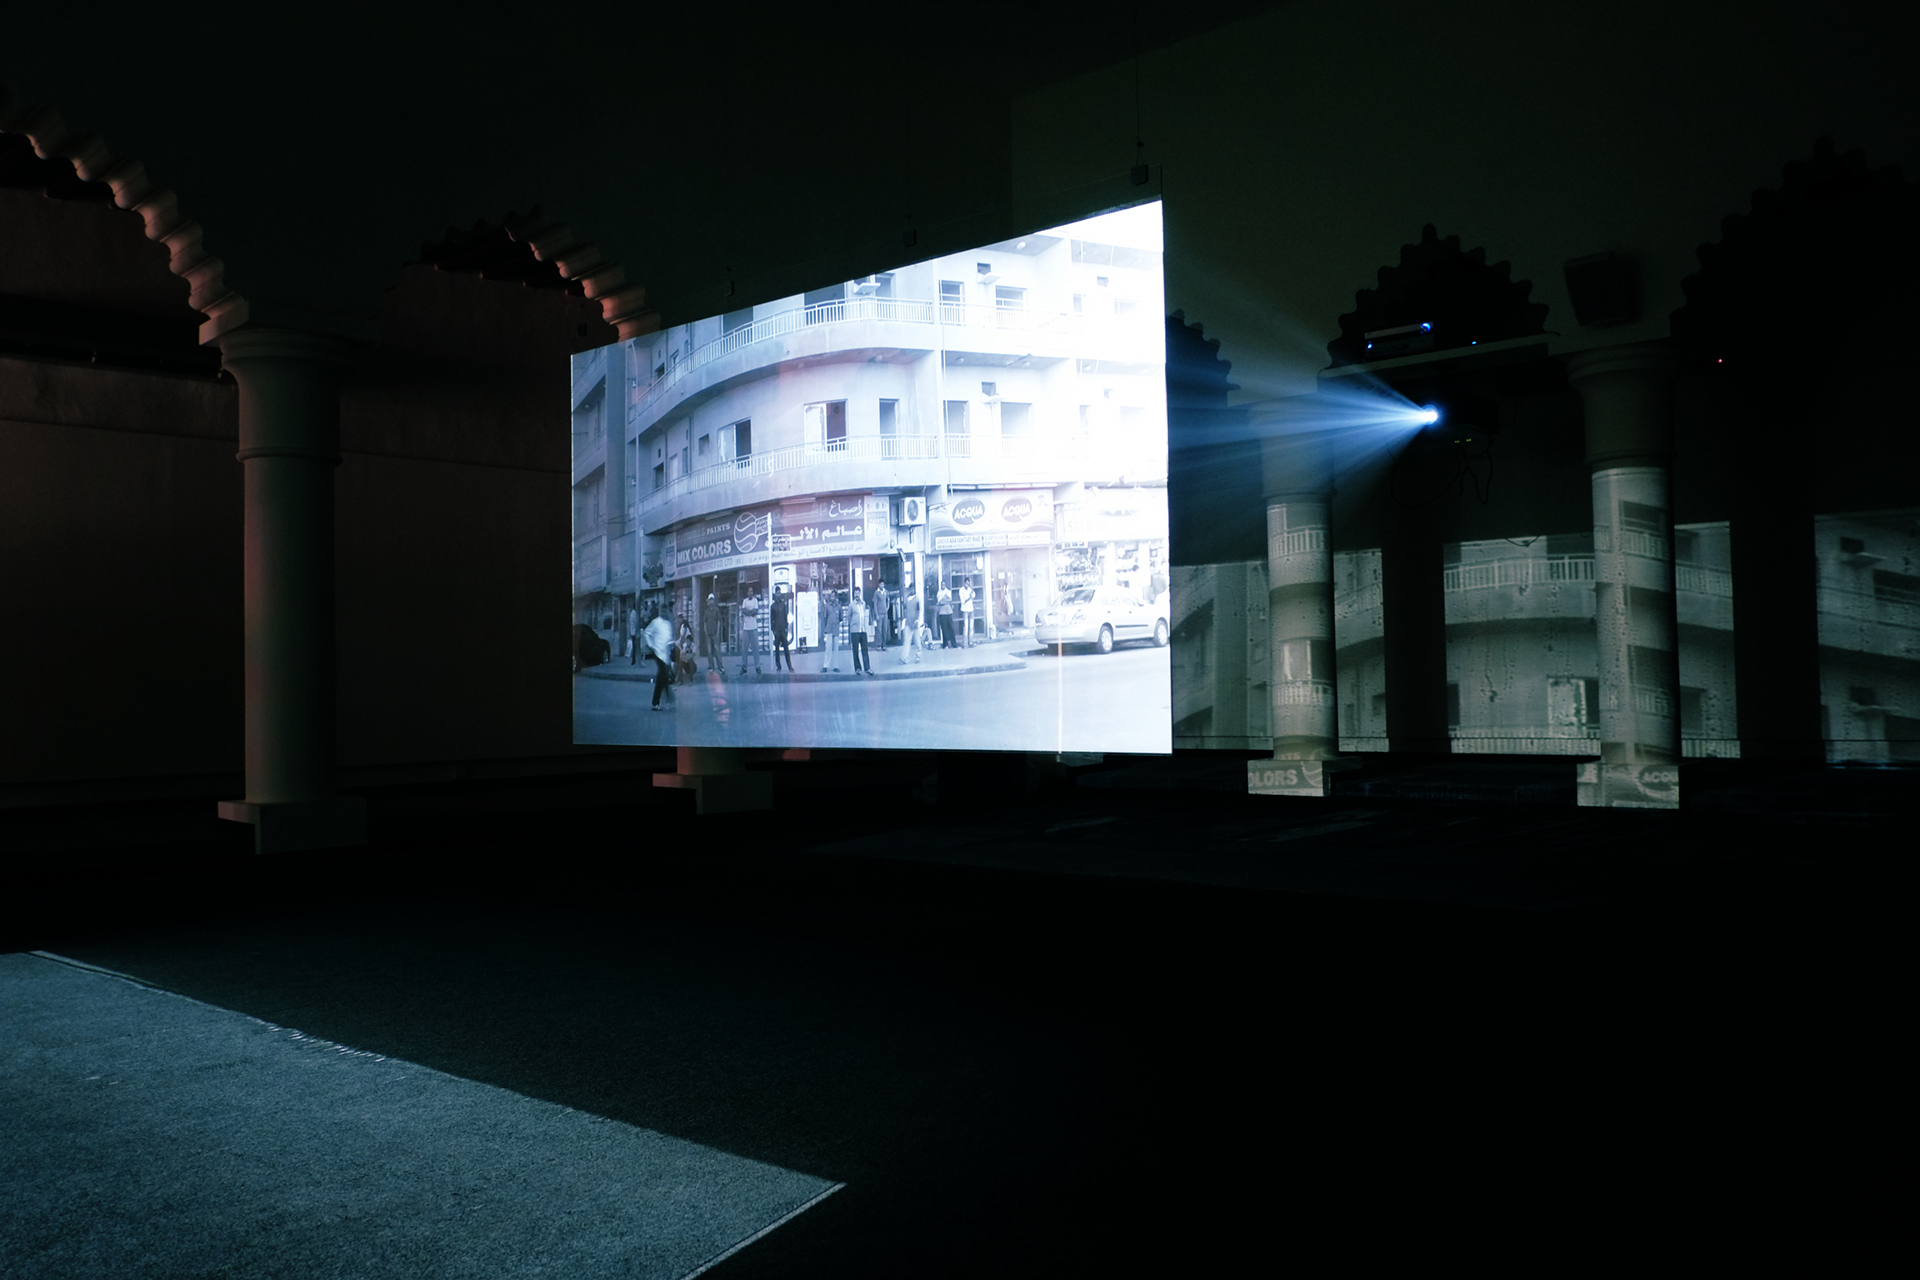 Installation shot of Dilbar, a single-channel video installation by Apichatpong Weerasethakul and Chai Siris, 2013, for Sharjah Biennial 11| Artes Mundi| STIR